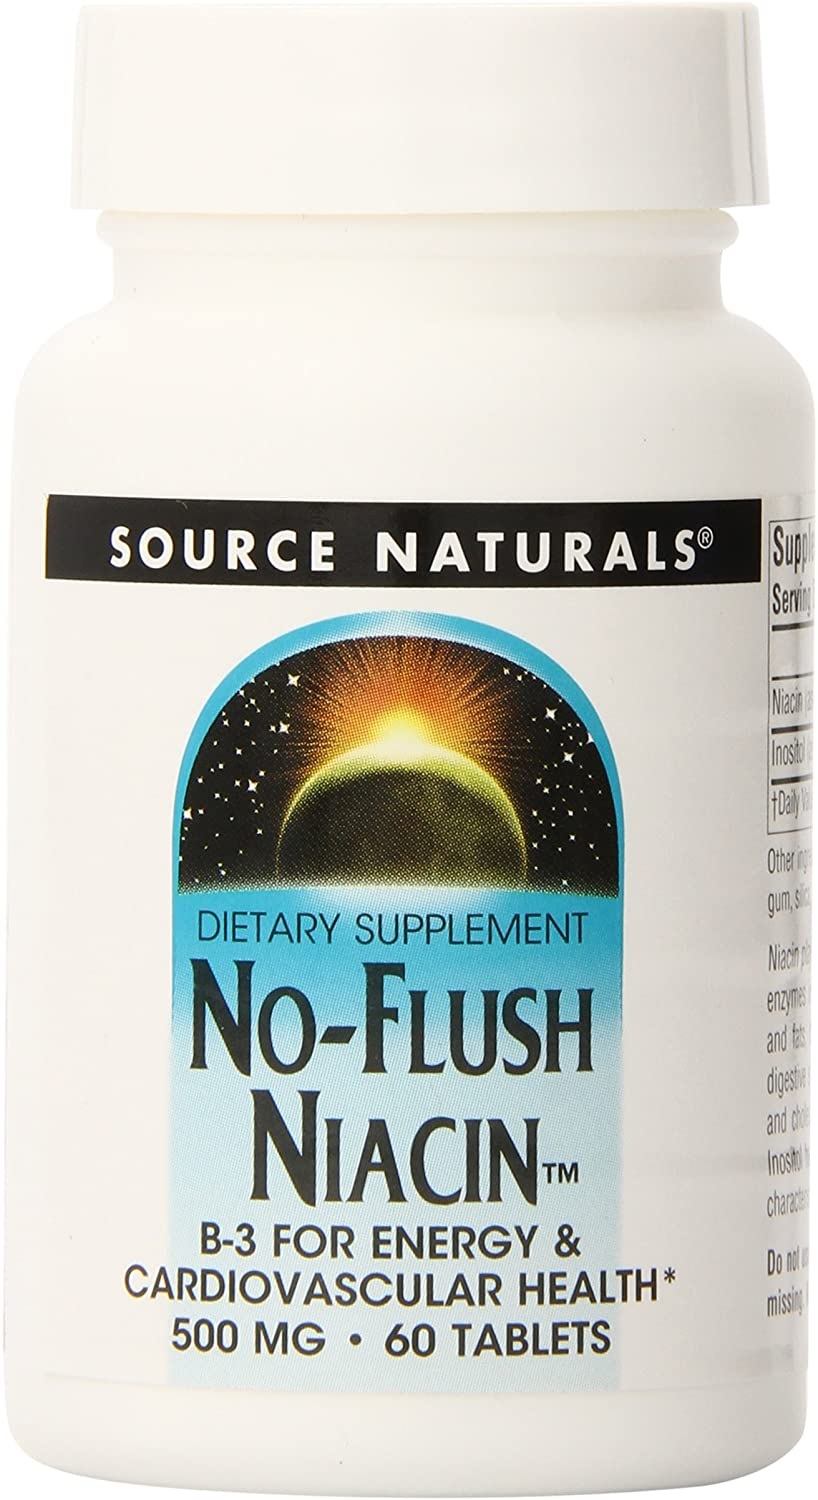 Source Naturals No-Flush Niacin, 500mg, 60 Tablets (Pack of 3)